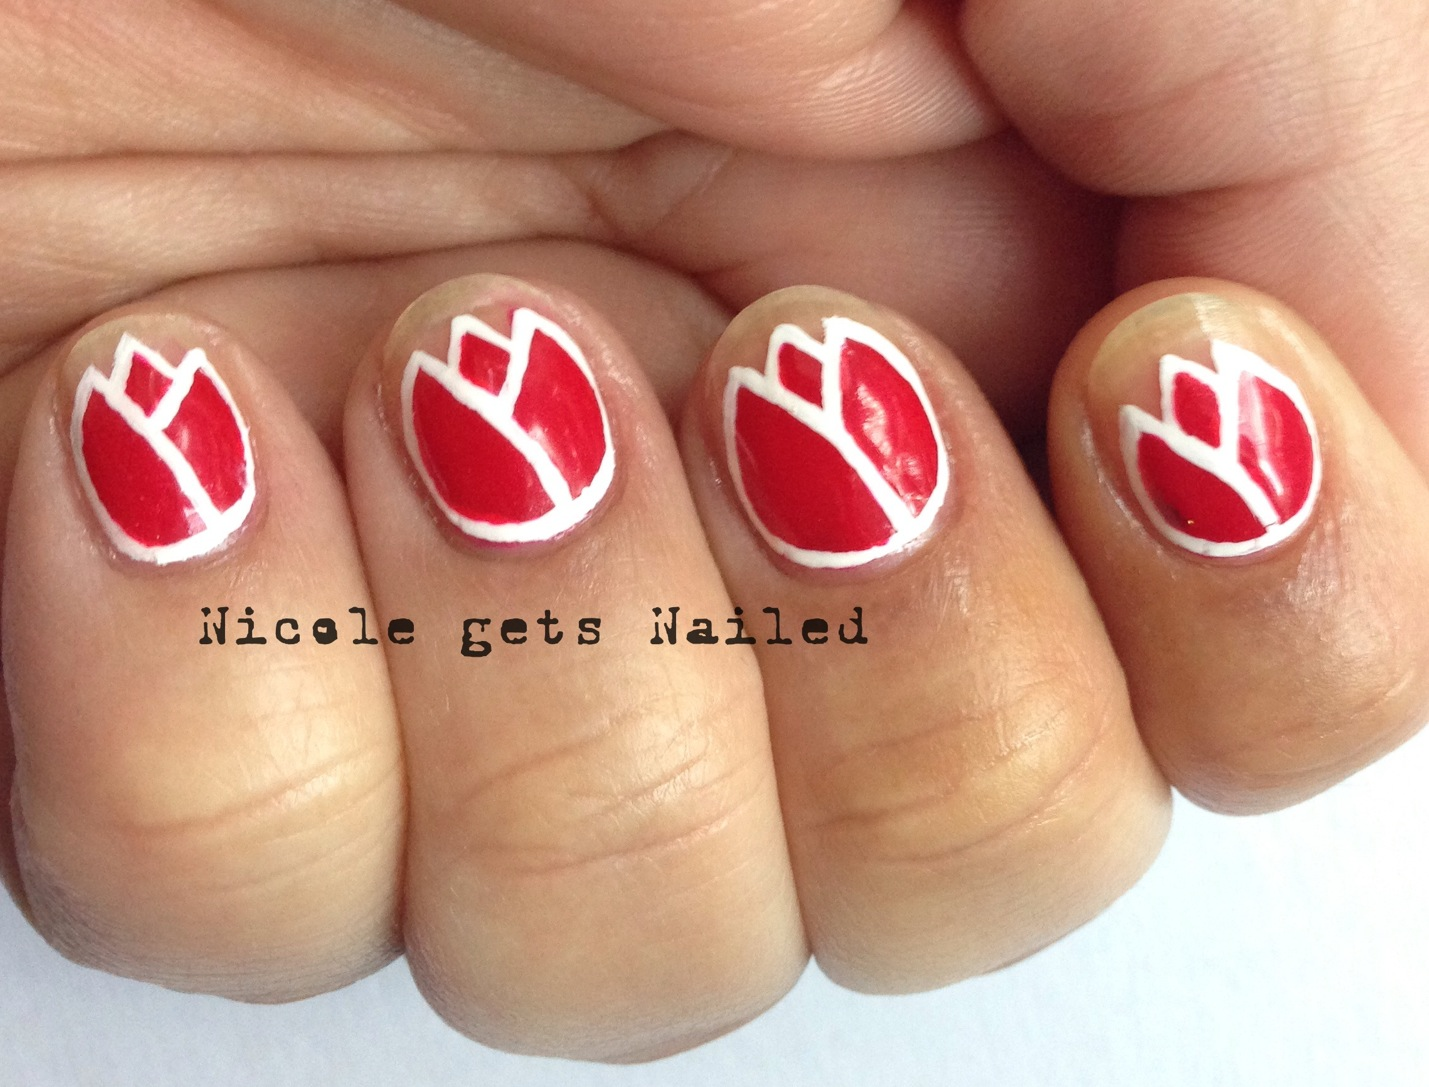 Pin by Gelic' Nail art on Inspirational people's nail art ...